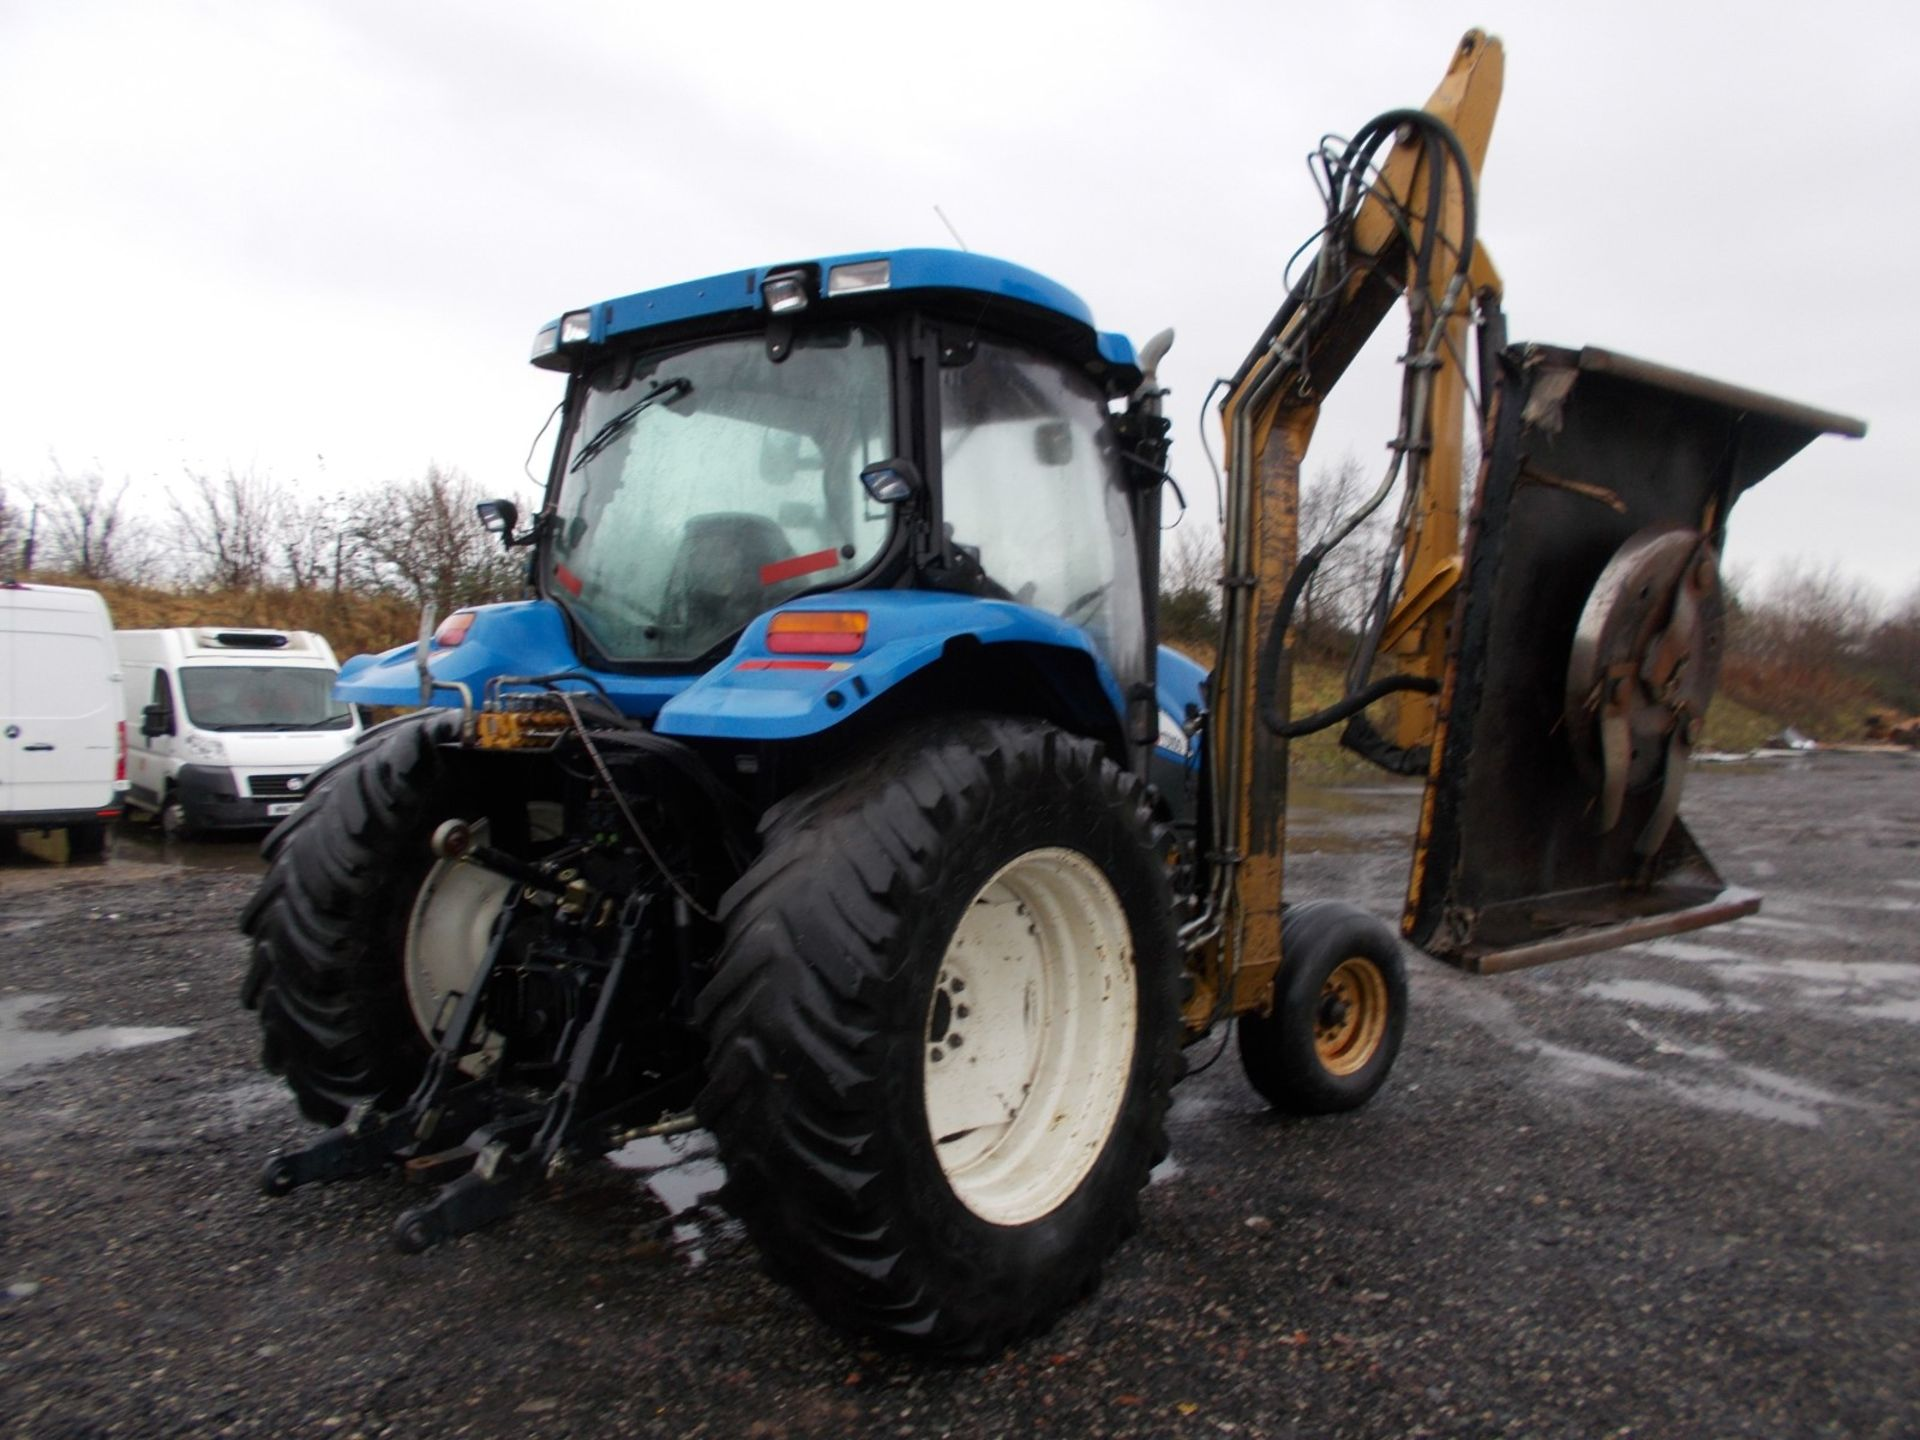 2003 NEW HOLLAND TS100A TRACTOR WITH MOWER ATTACHMENT, 4.5 LITRE 100HP TURBO DIESEL *PLUS VAT* - Image 5 of 24